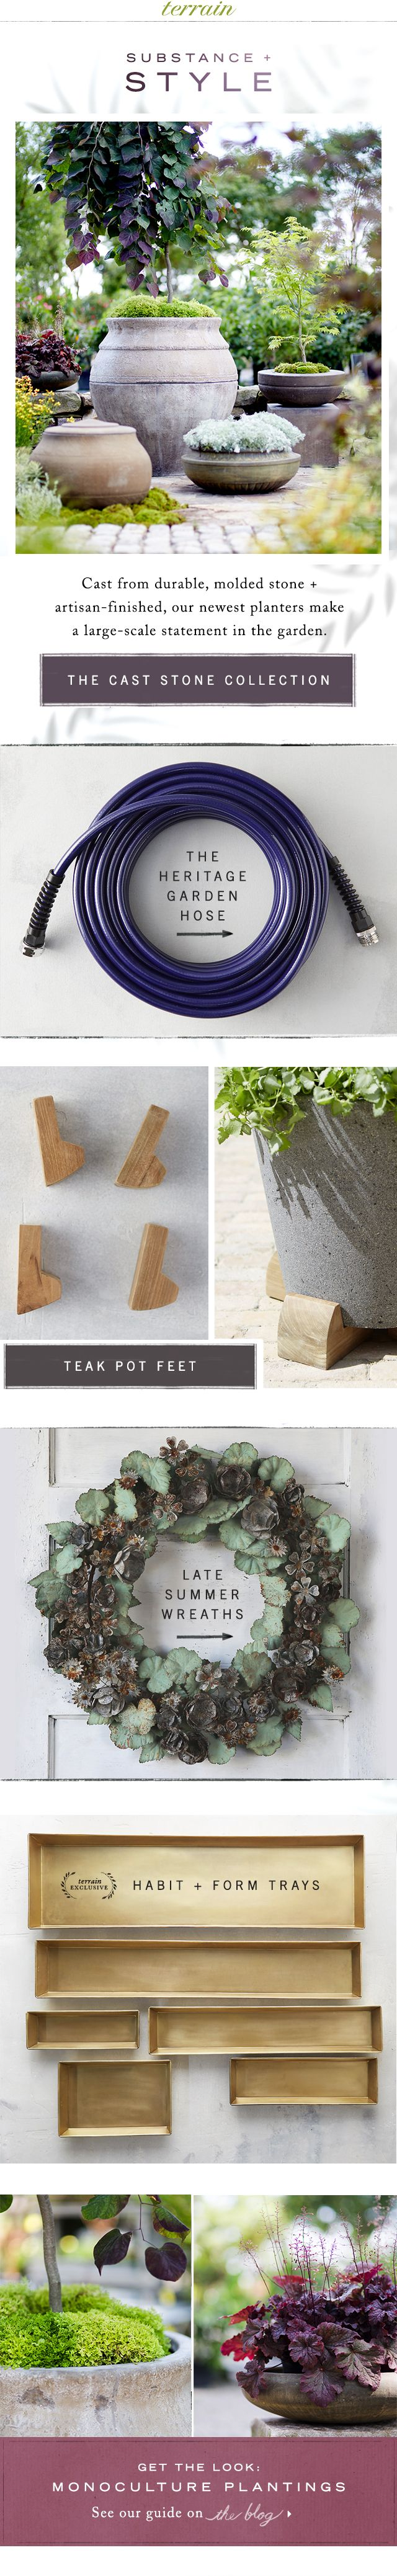 Cast stone #planters arrive in the garden at #shopterrain August 6